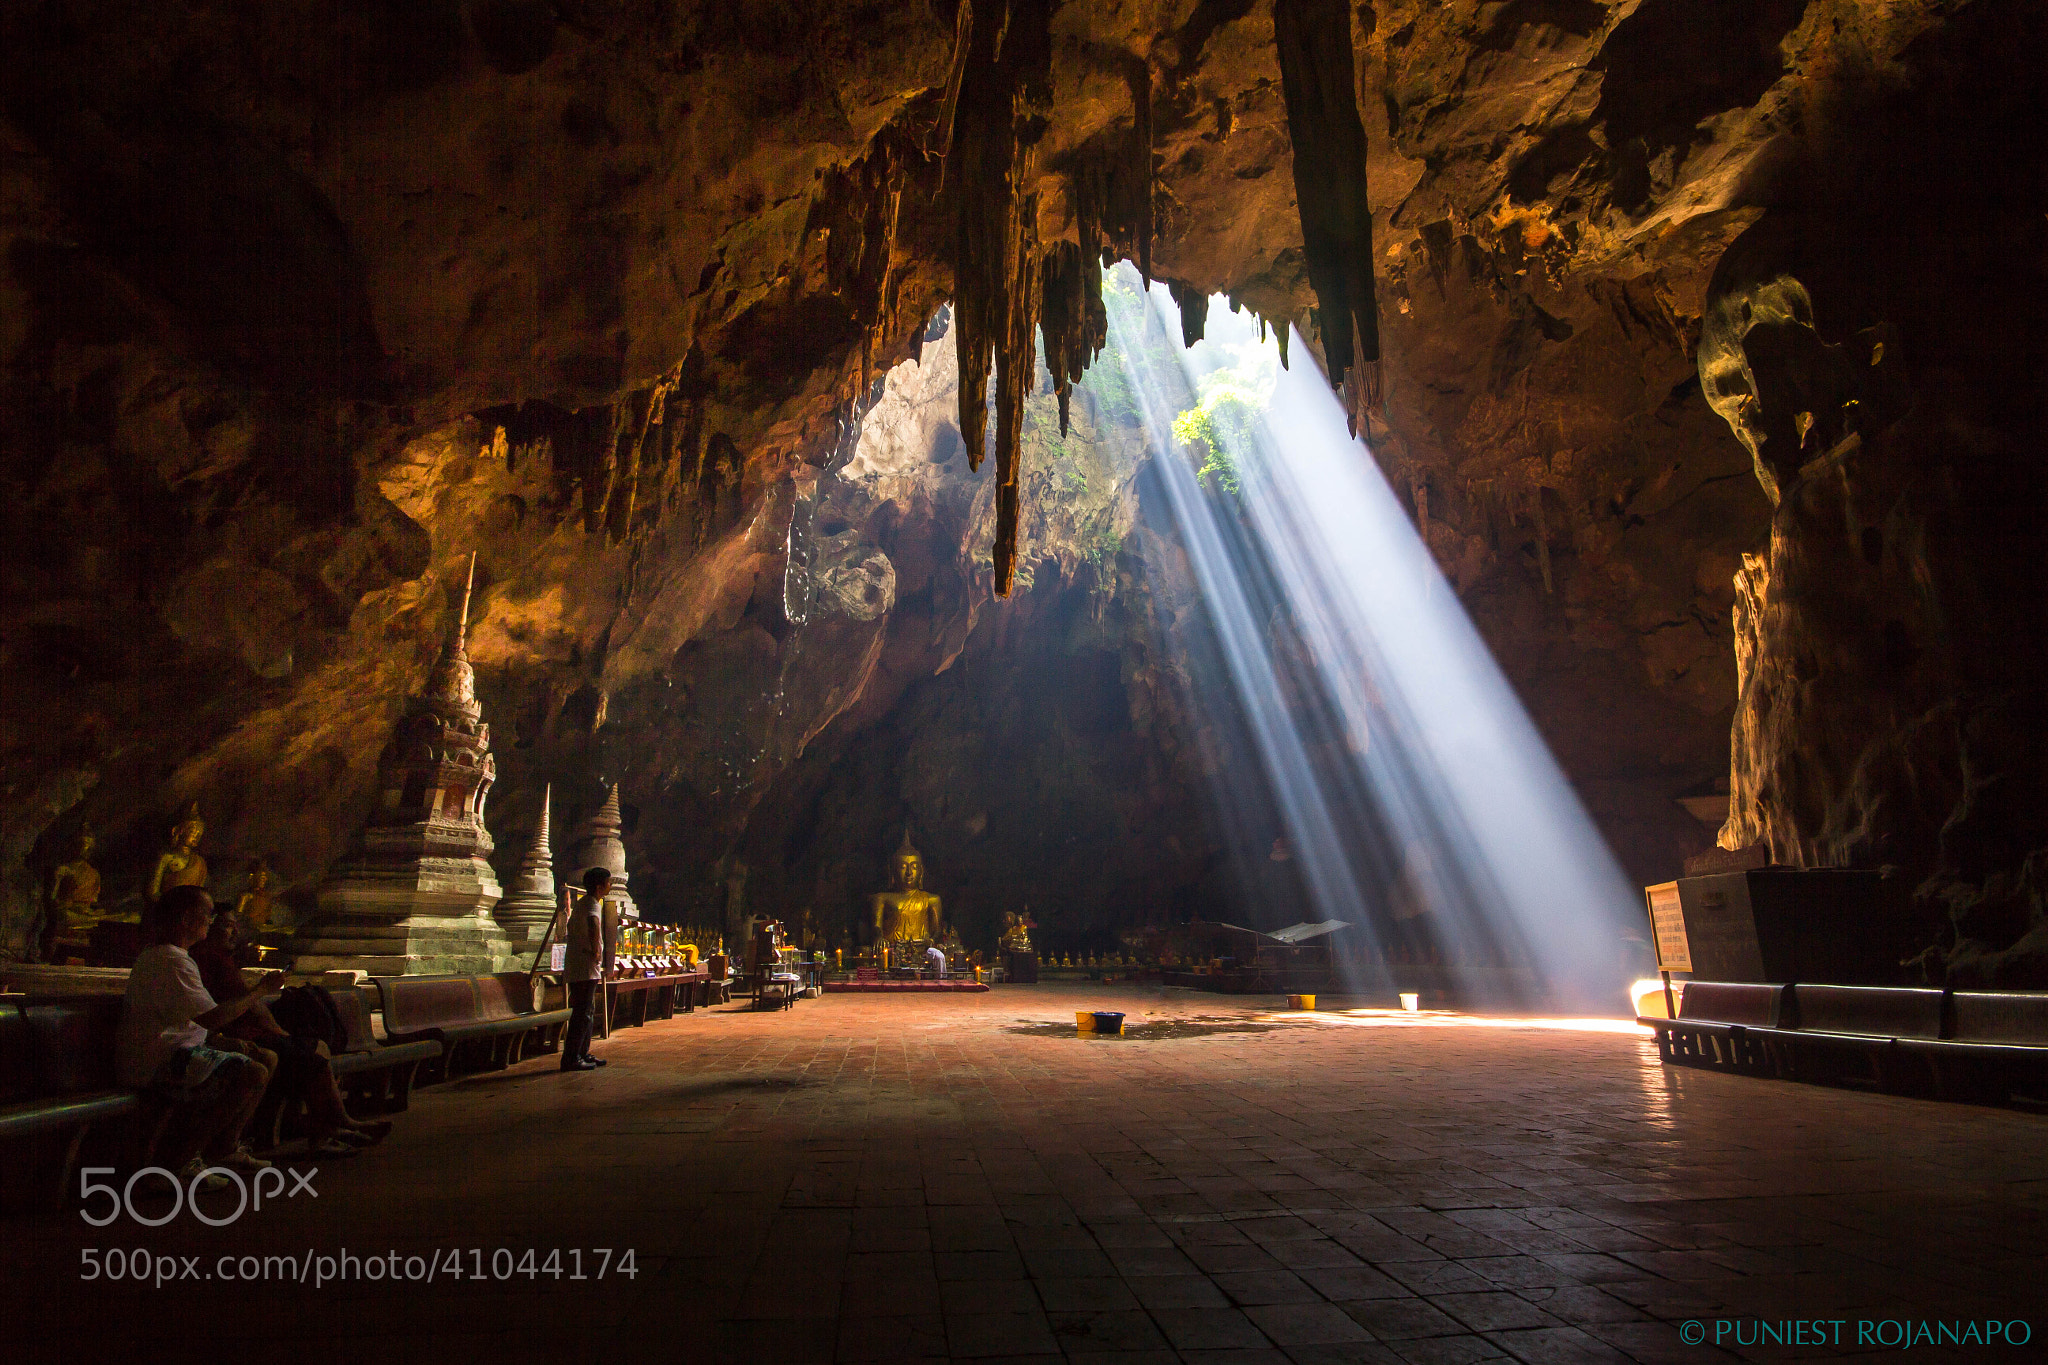 Photograph Khao Luang Cave by Puniest Rojanapo on 500px